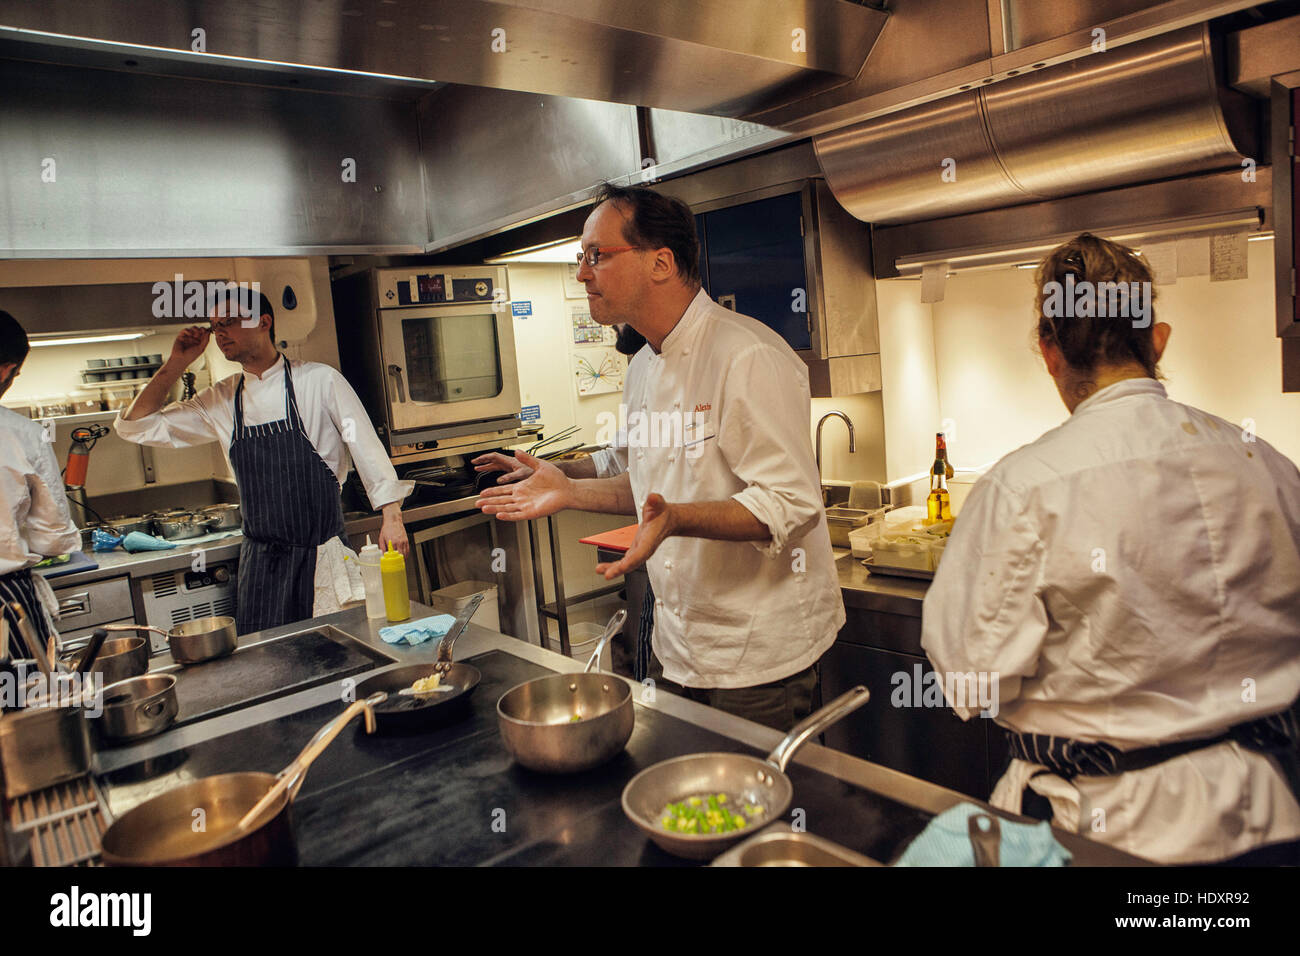 Restaurant Kitchen Staff alexis gauthier, chef and owner of the restaurant, gestures to